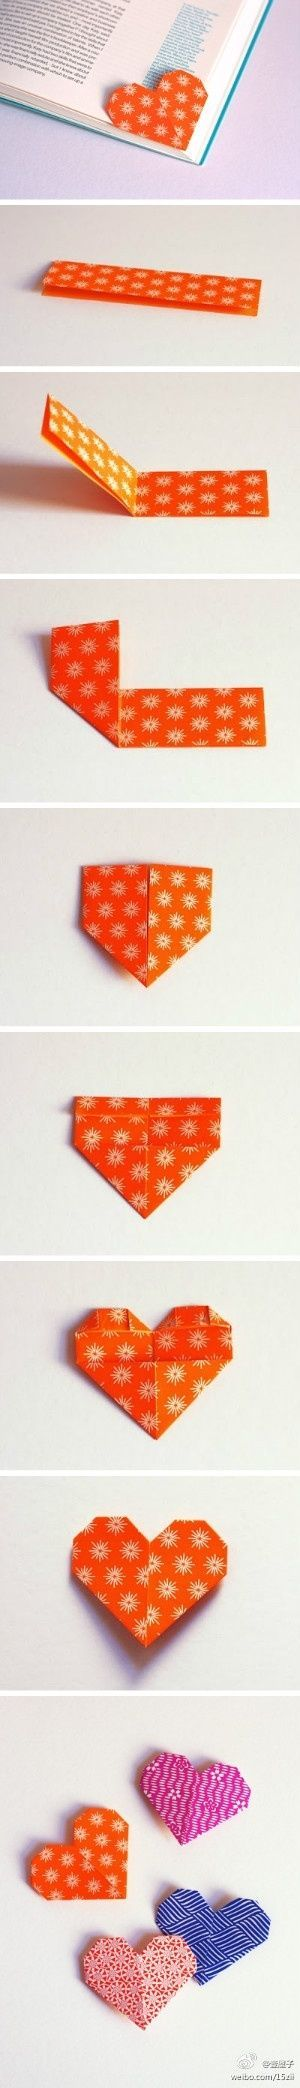 heart pin for book #paperprojects